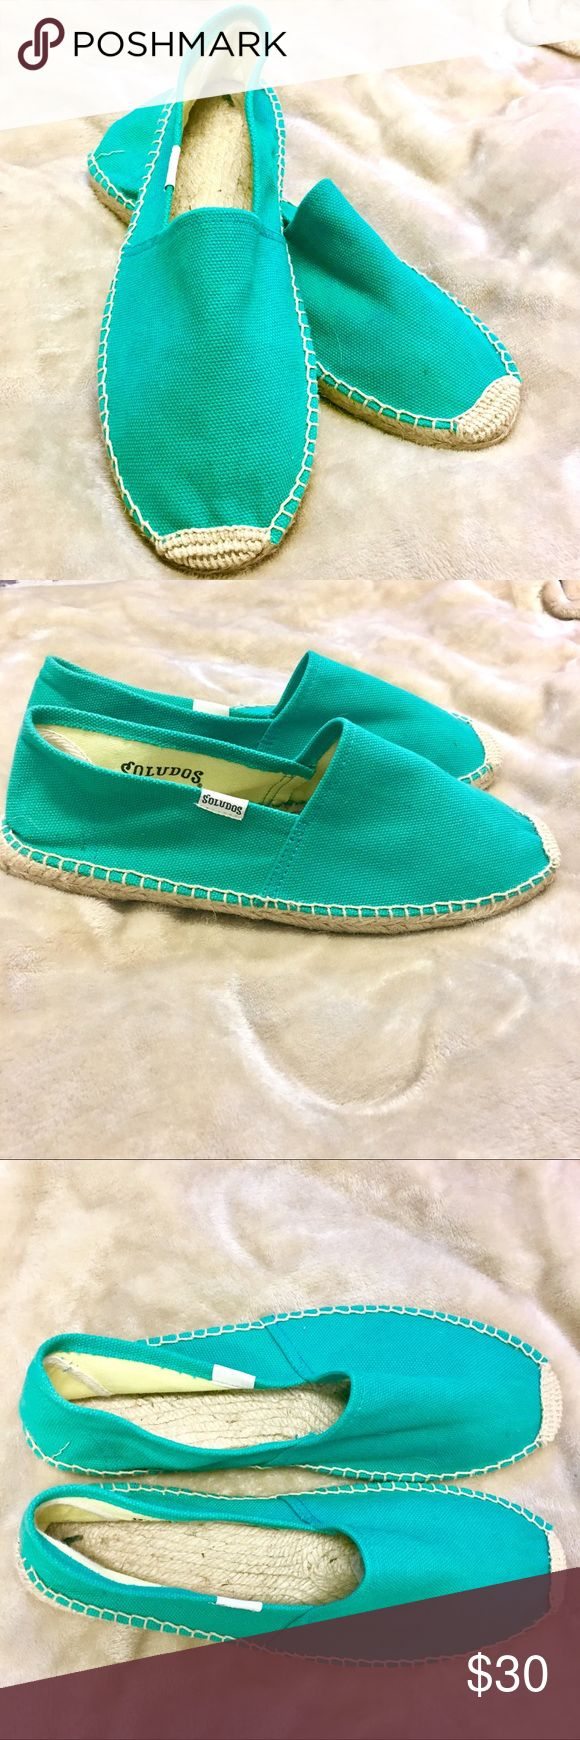 Soldudos Green Espadrilles Flat Bright green espadrilles shoes. Brand is Soludos. Perfect condition. Size 8. Soludos Shoes Espadrilles